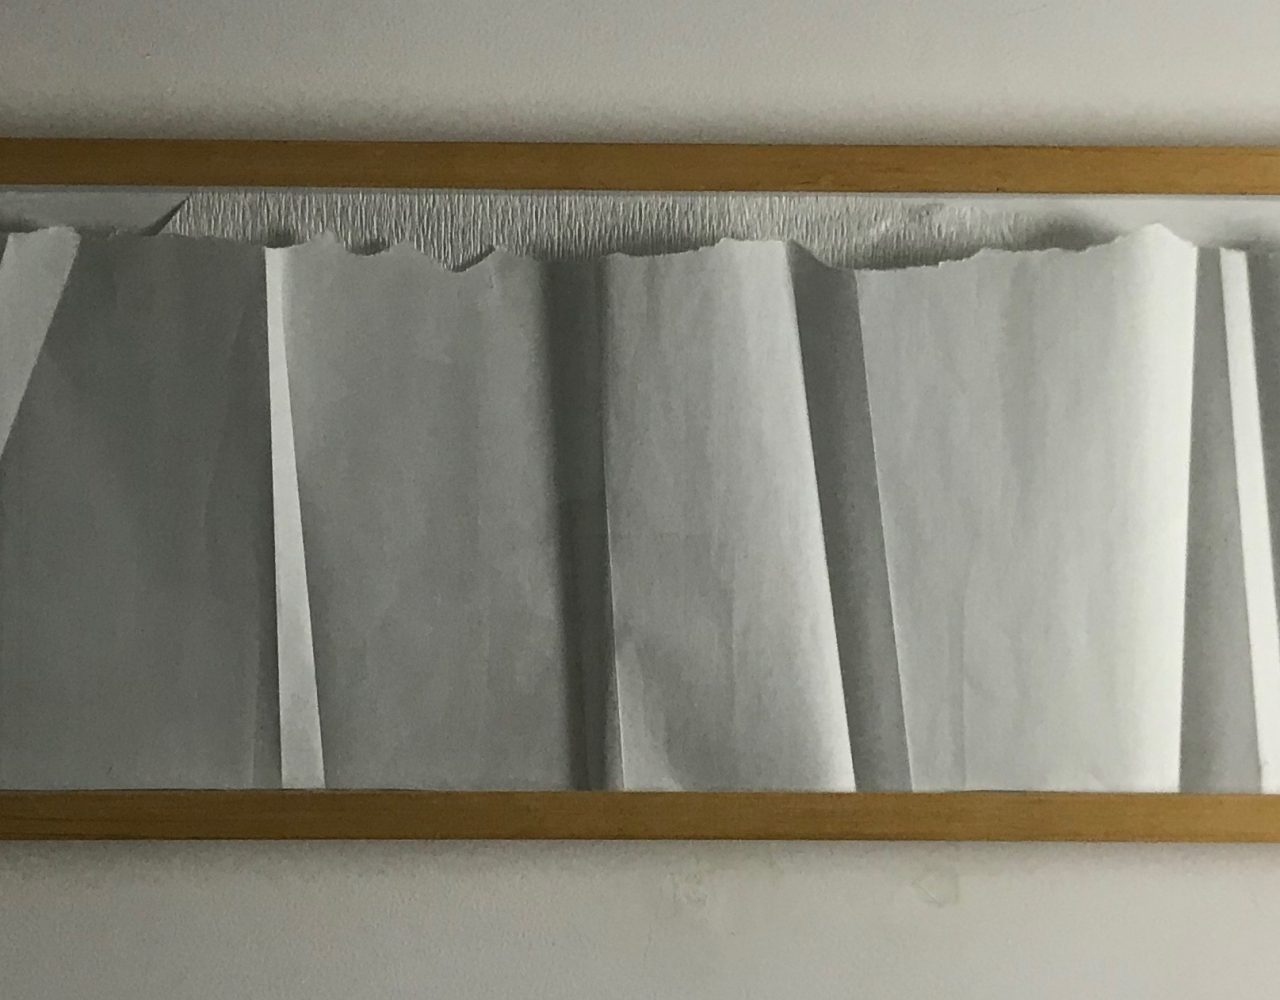 S/ TÍTULO / Papel de arroz e crepom </br>